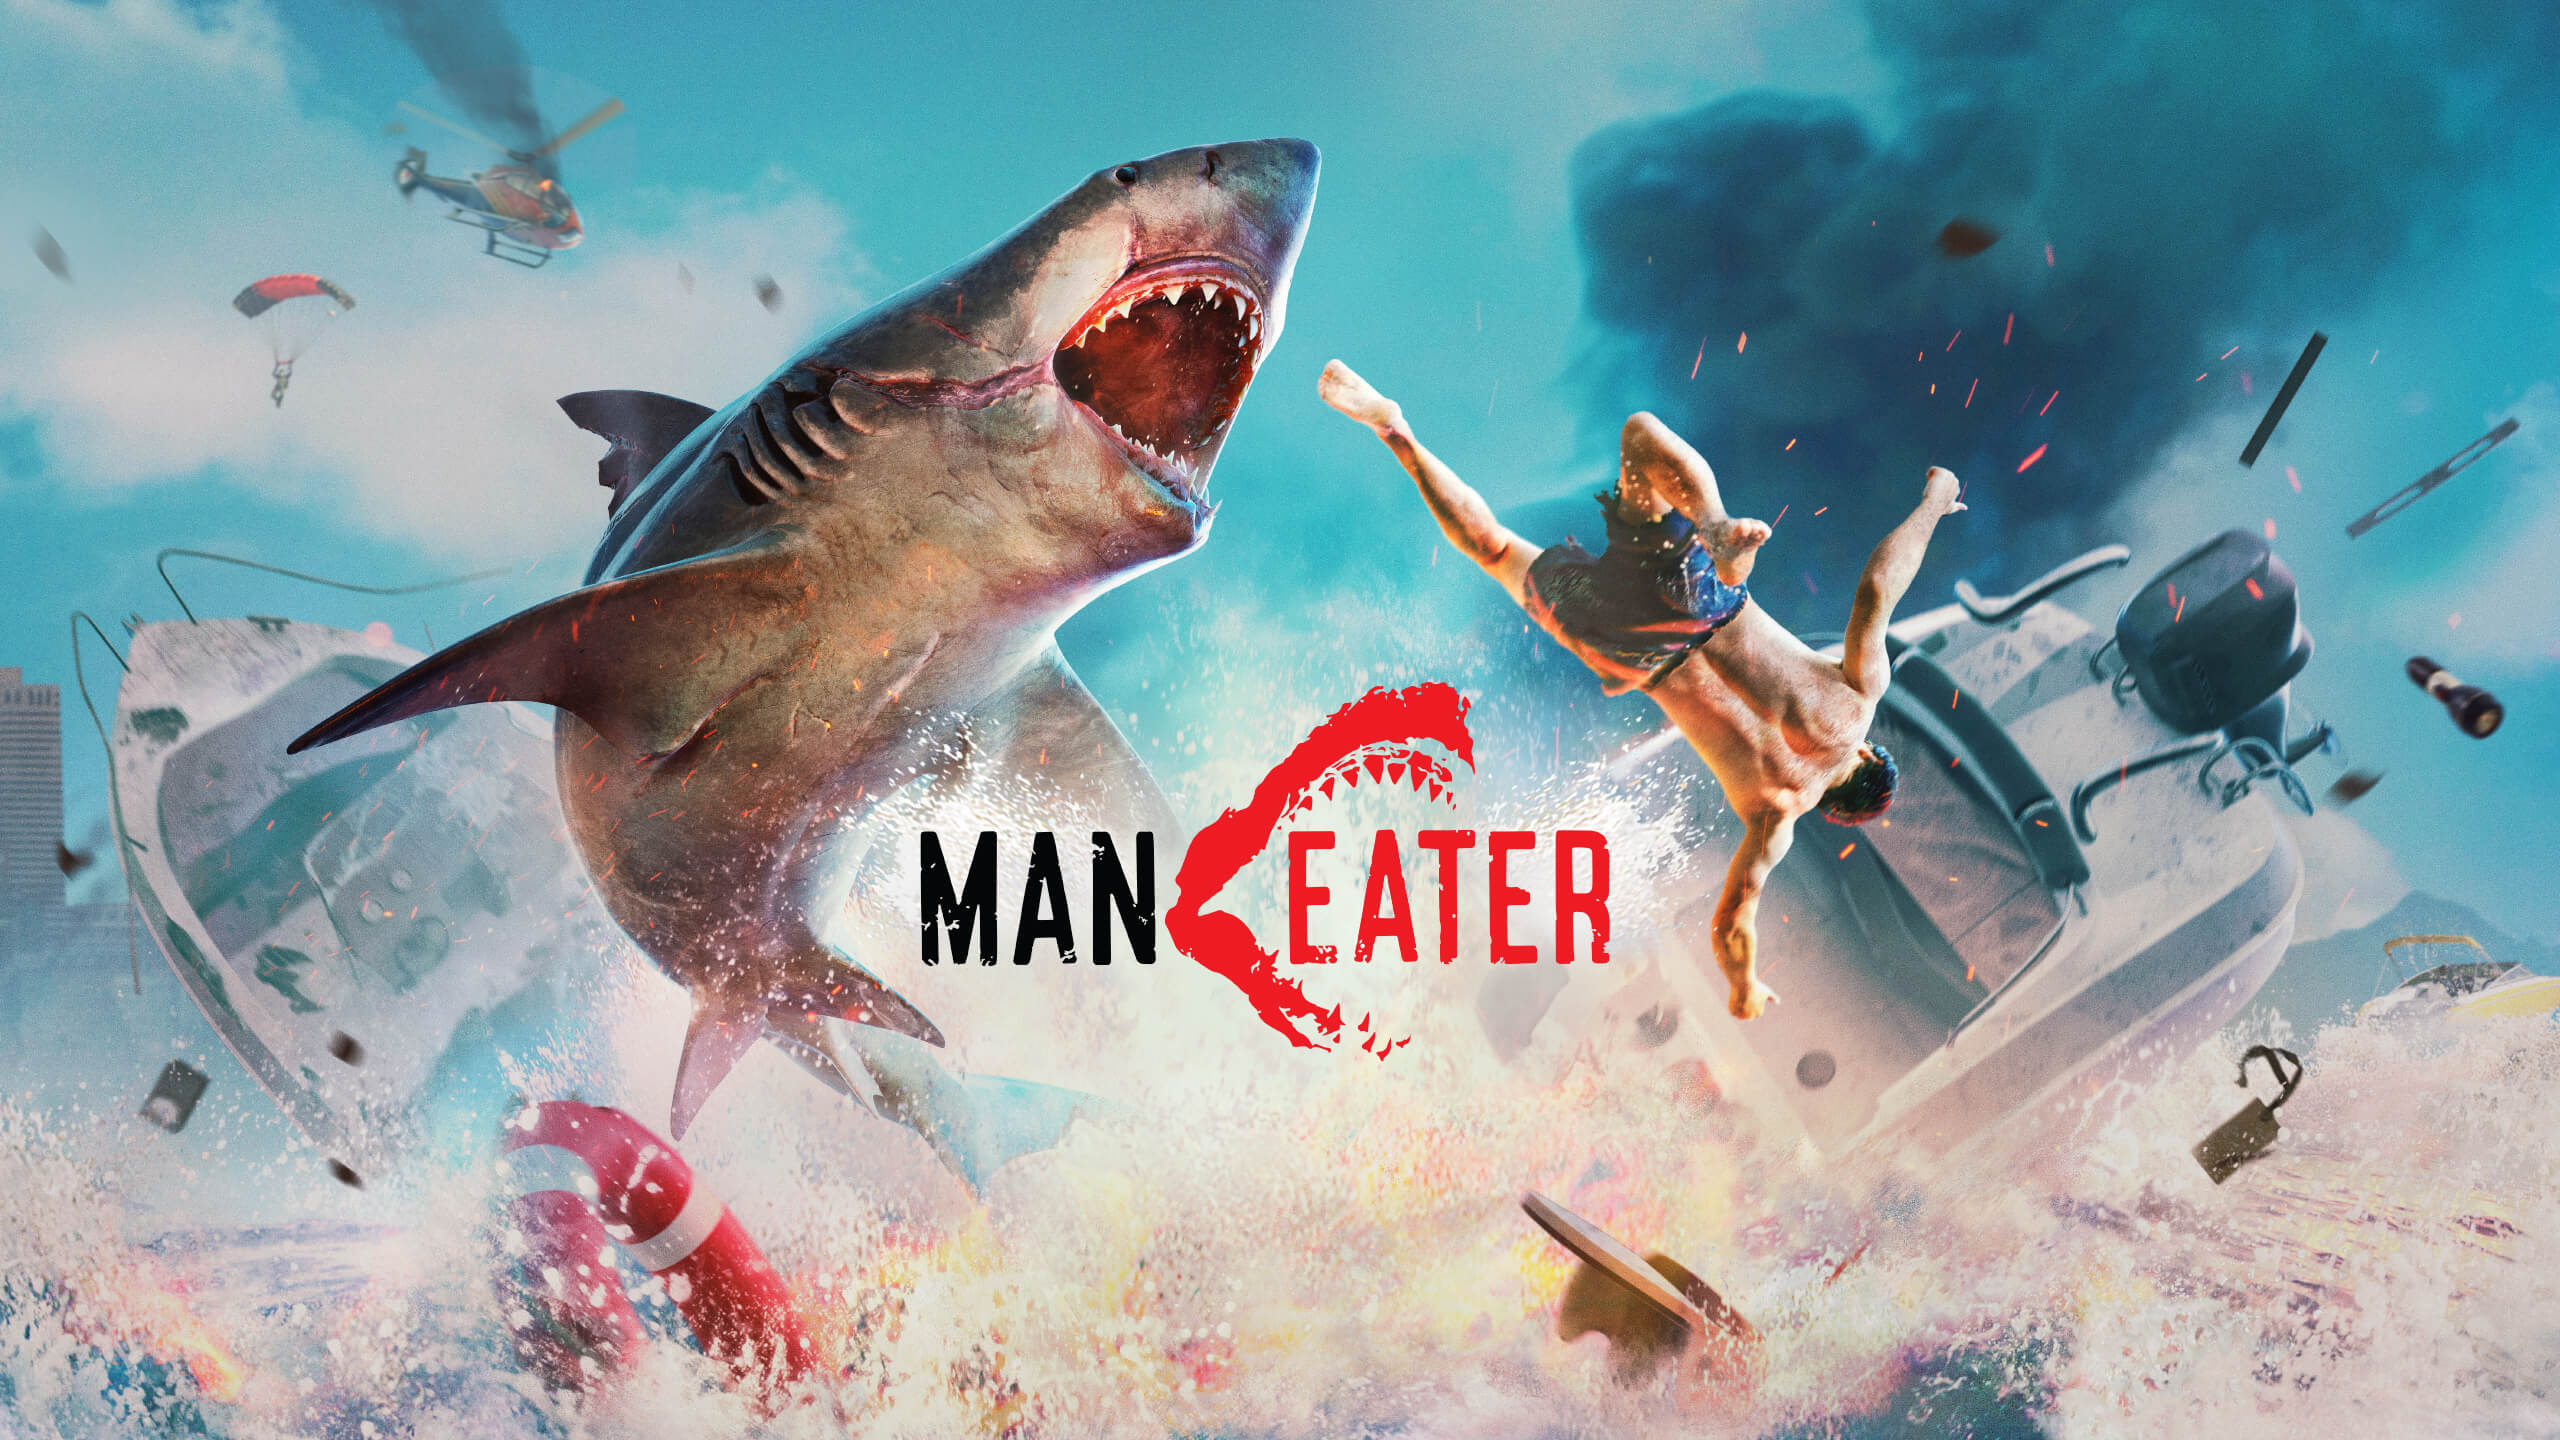 maneater background wallpaper 71283